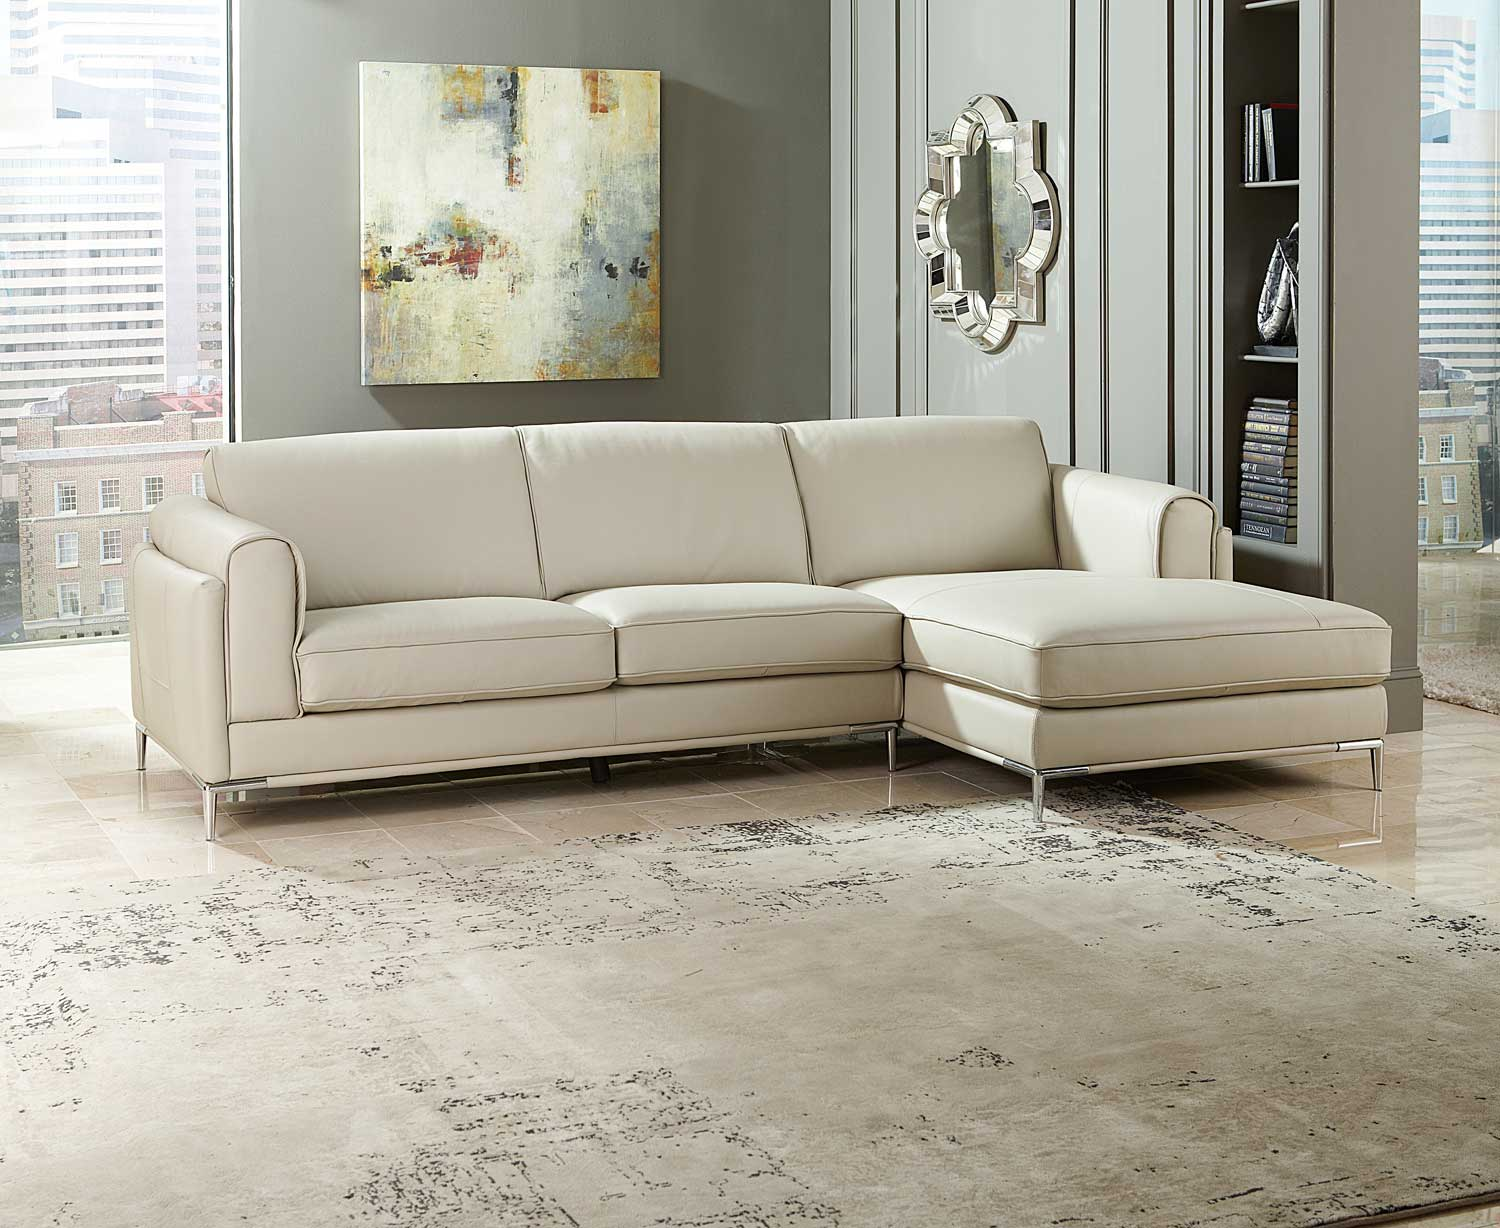 sofas chaise house living sofa concept room to huge applied best wrap your sectional with couch beige around for